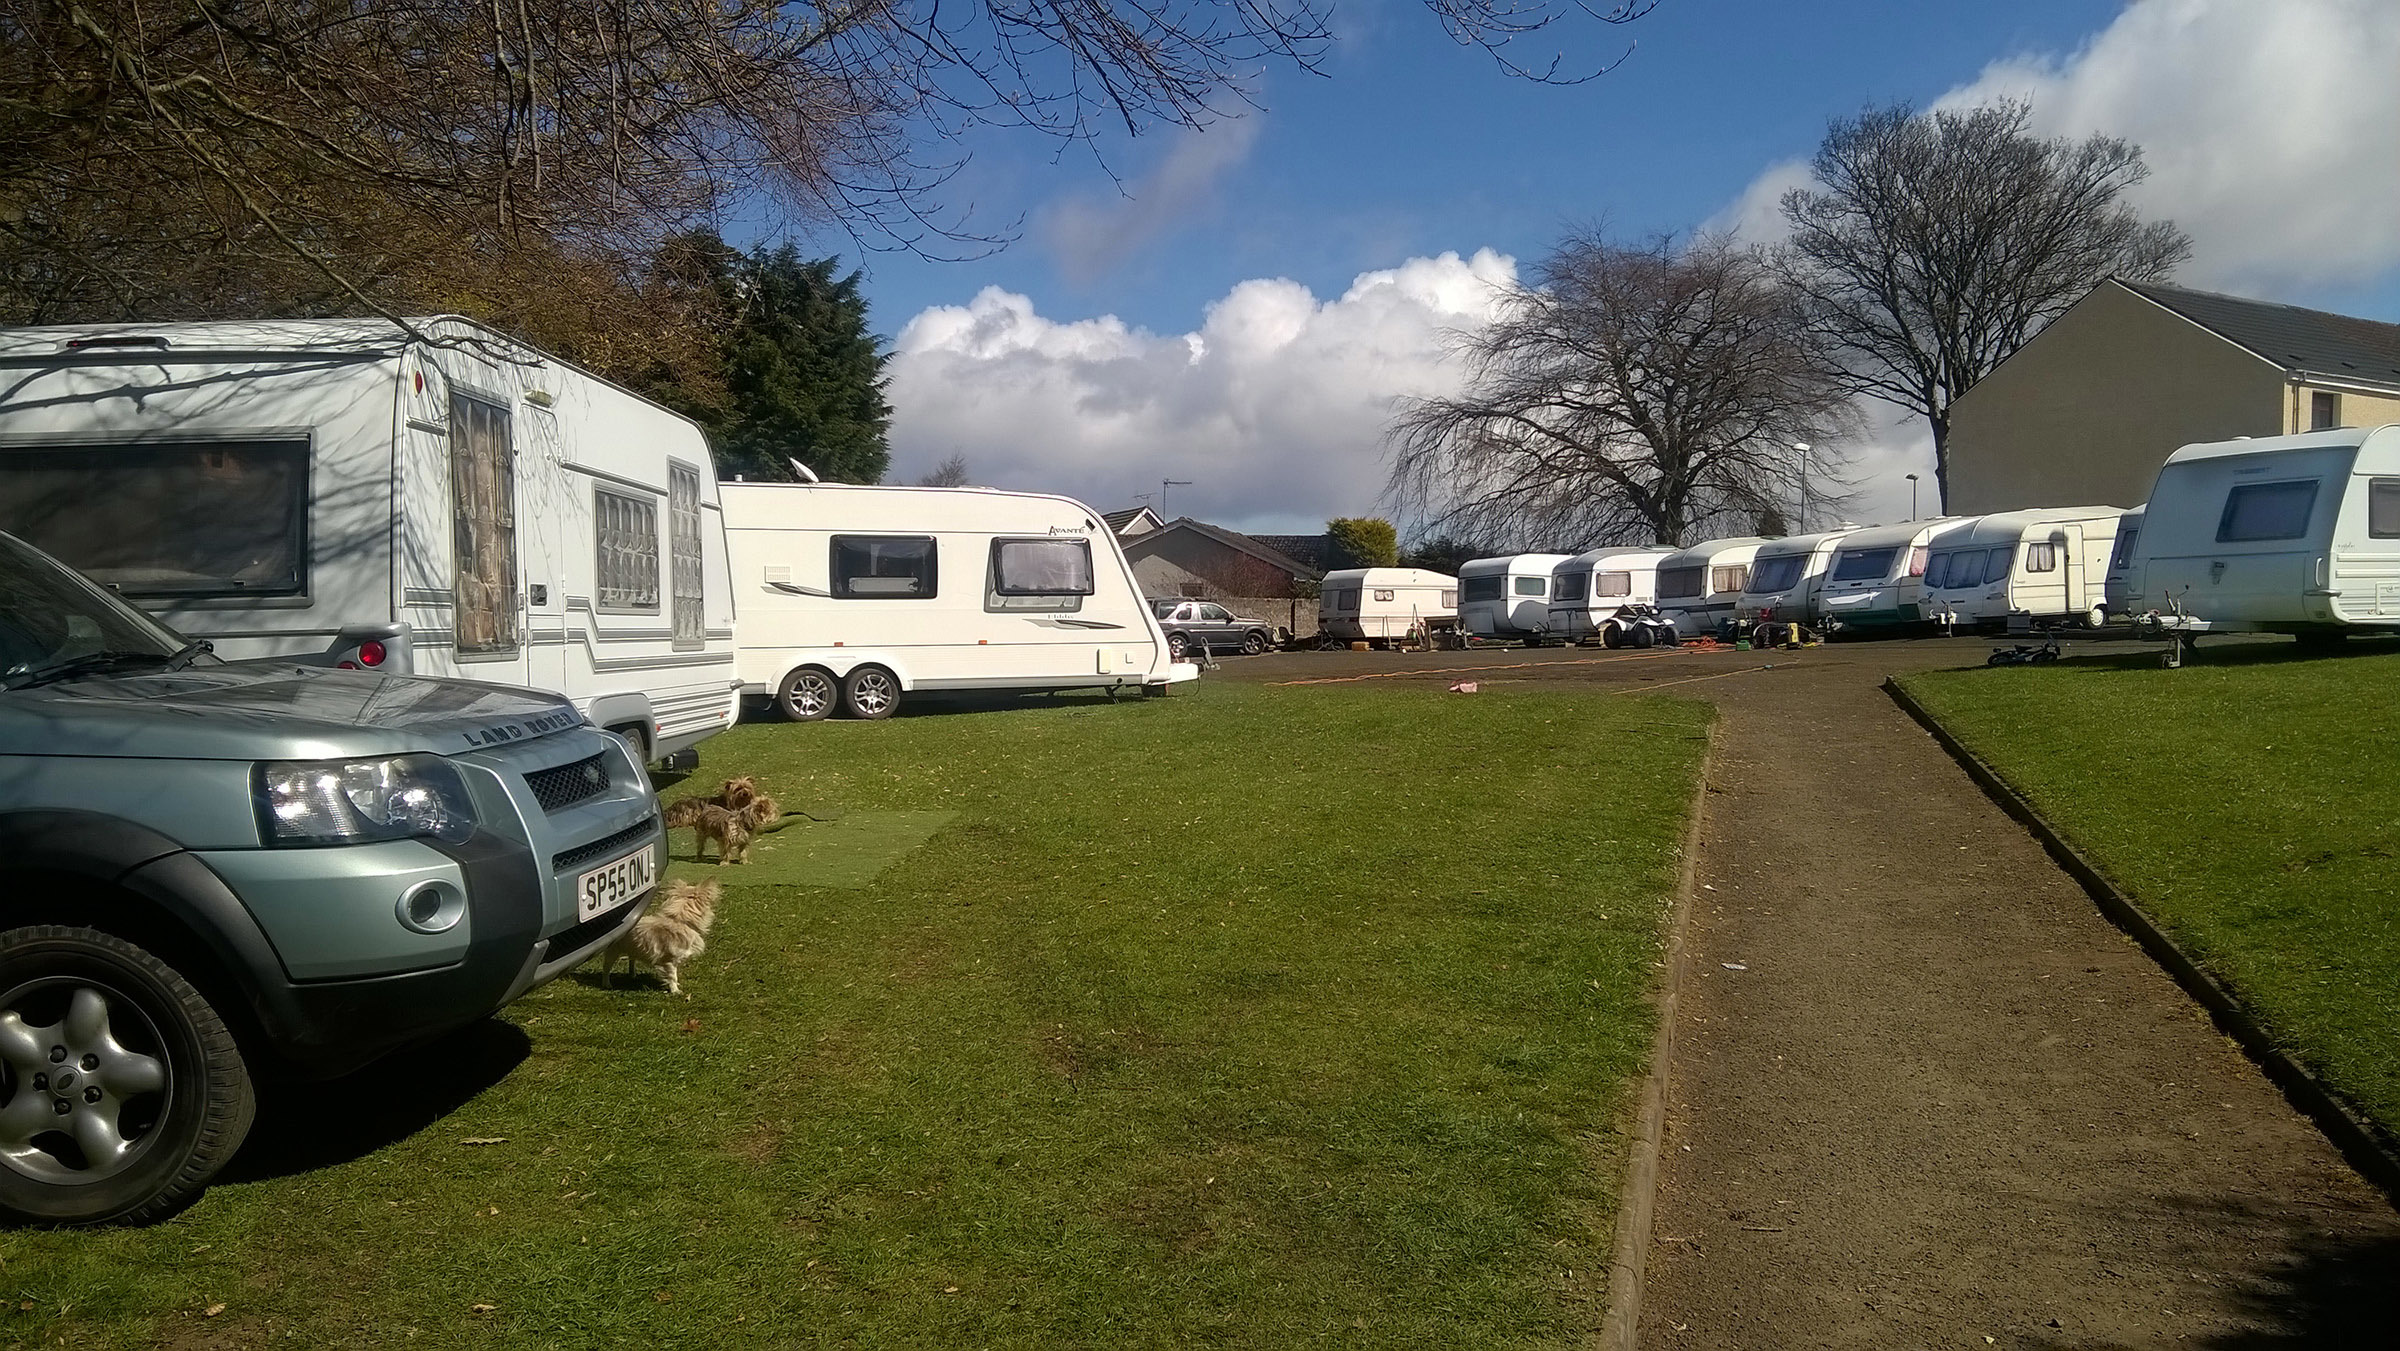 The caravans and vehicles at the end of the lane between Westfield Drive and Threewells Drive.